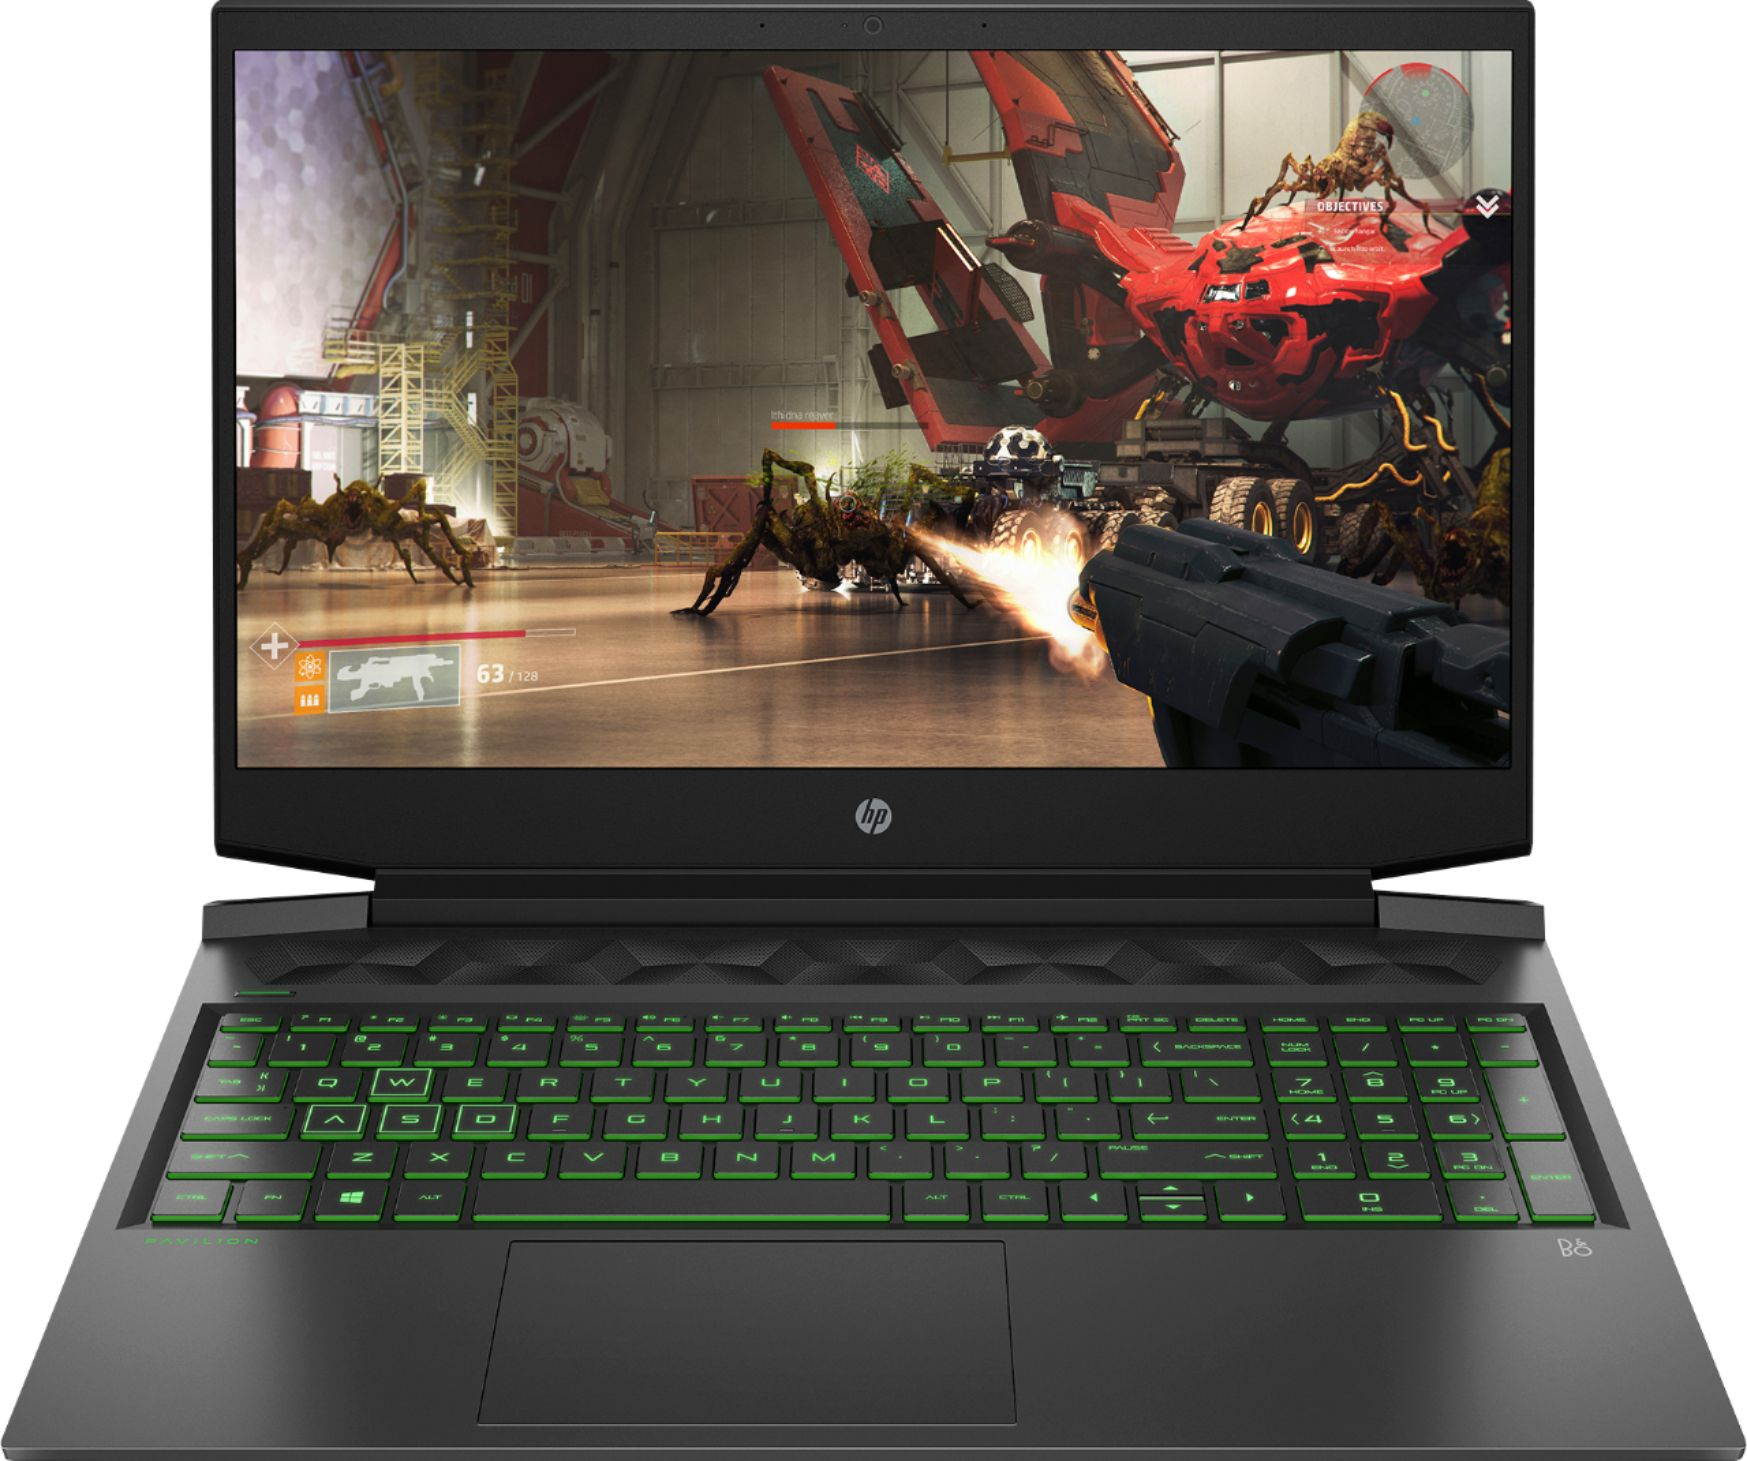 "Front Zoom. HP - Pavillion 16.1"" Gaming Laptop - Intel Core i5 - 8GB Memory - NVIDIA GeForce GTX 1660 Ti - 512GB SSD + 32GB Optane - Shadow Black."